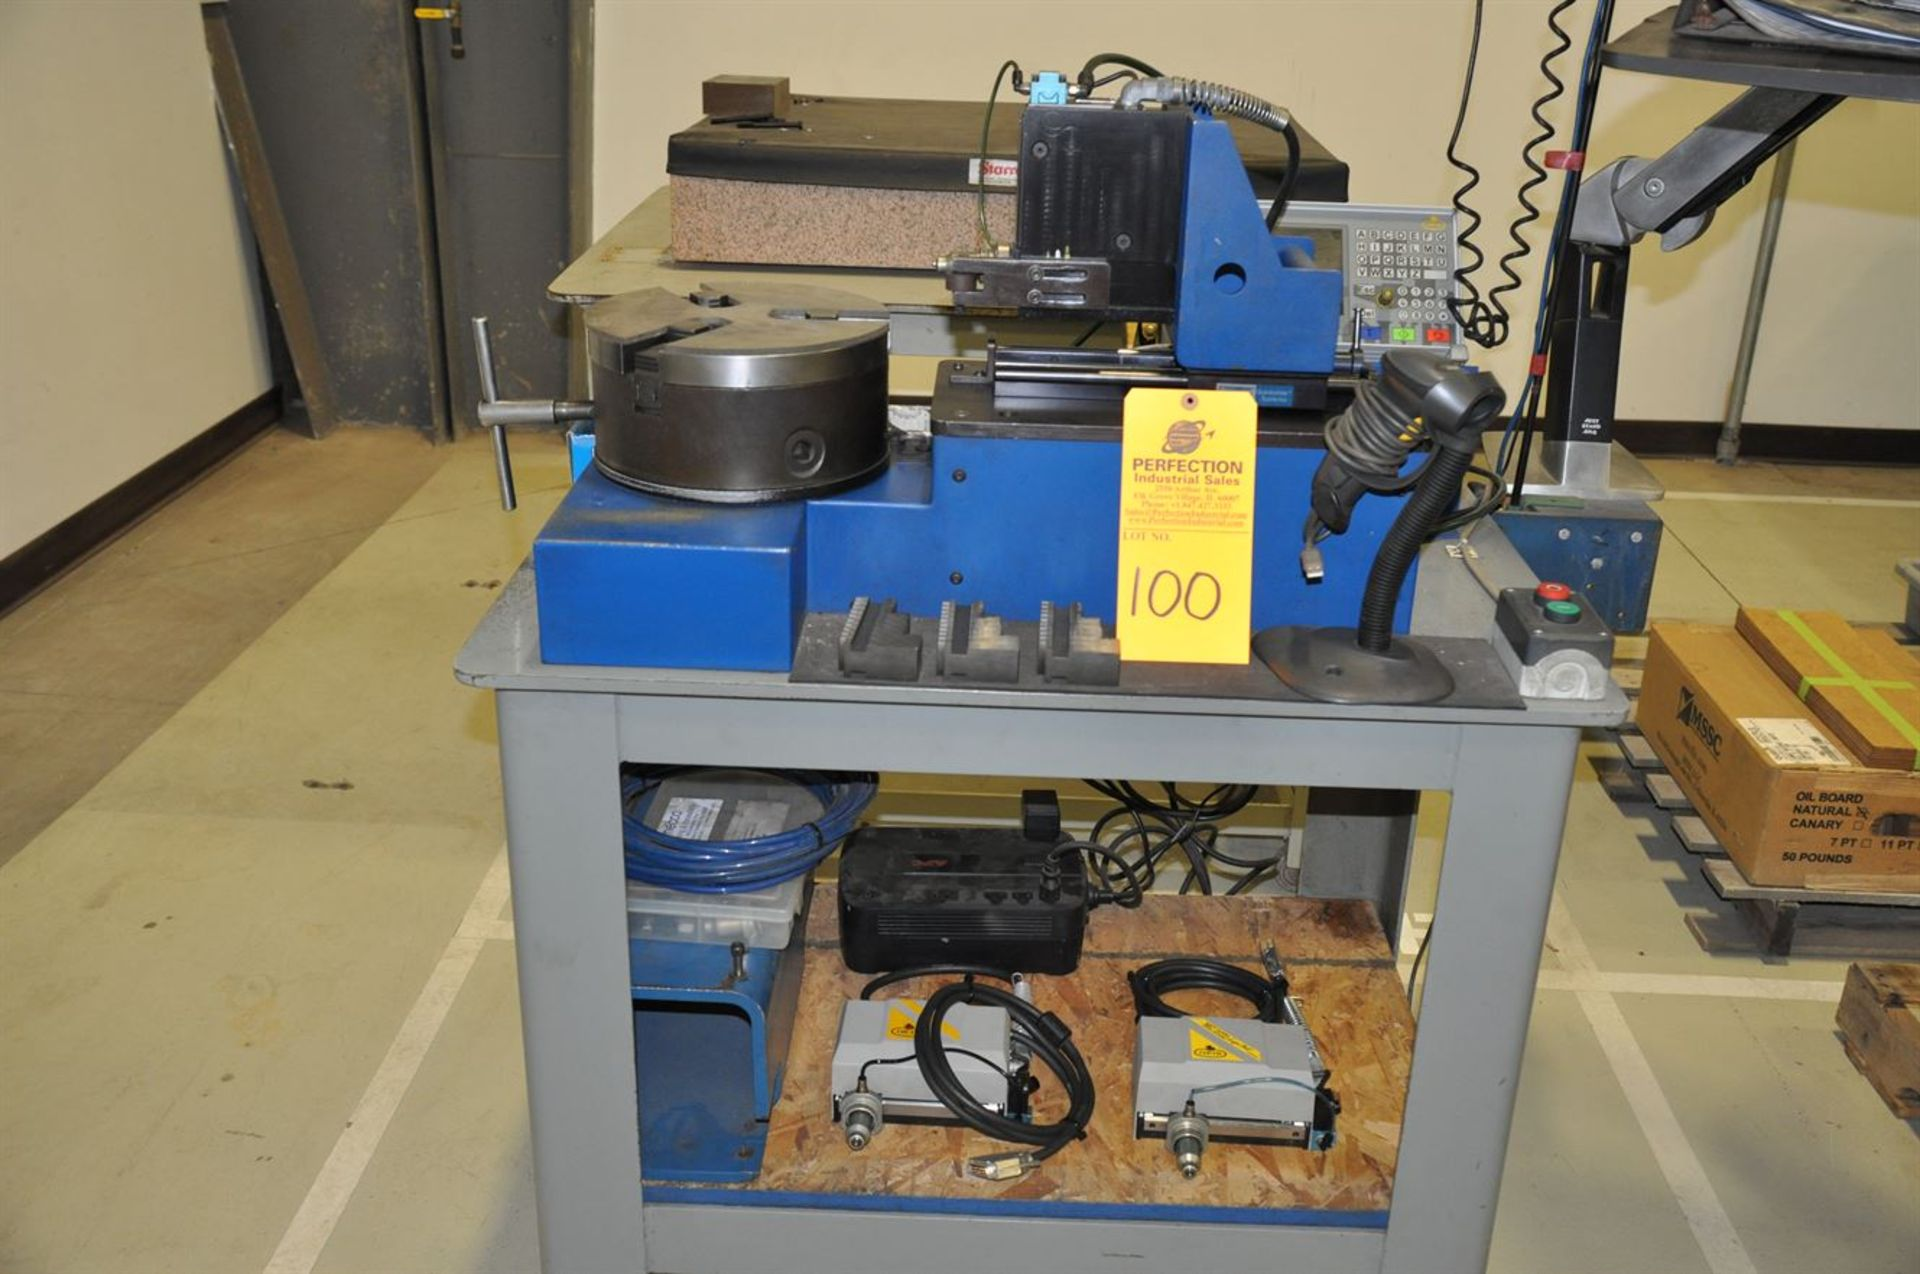 2011 MECCO MC2000 SuperFast Marking System, s/n 119982, w/ COUTH MC2000 T2 Controller, Bar Code